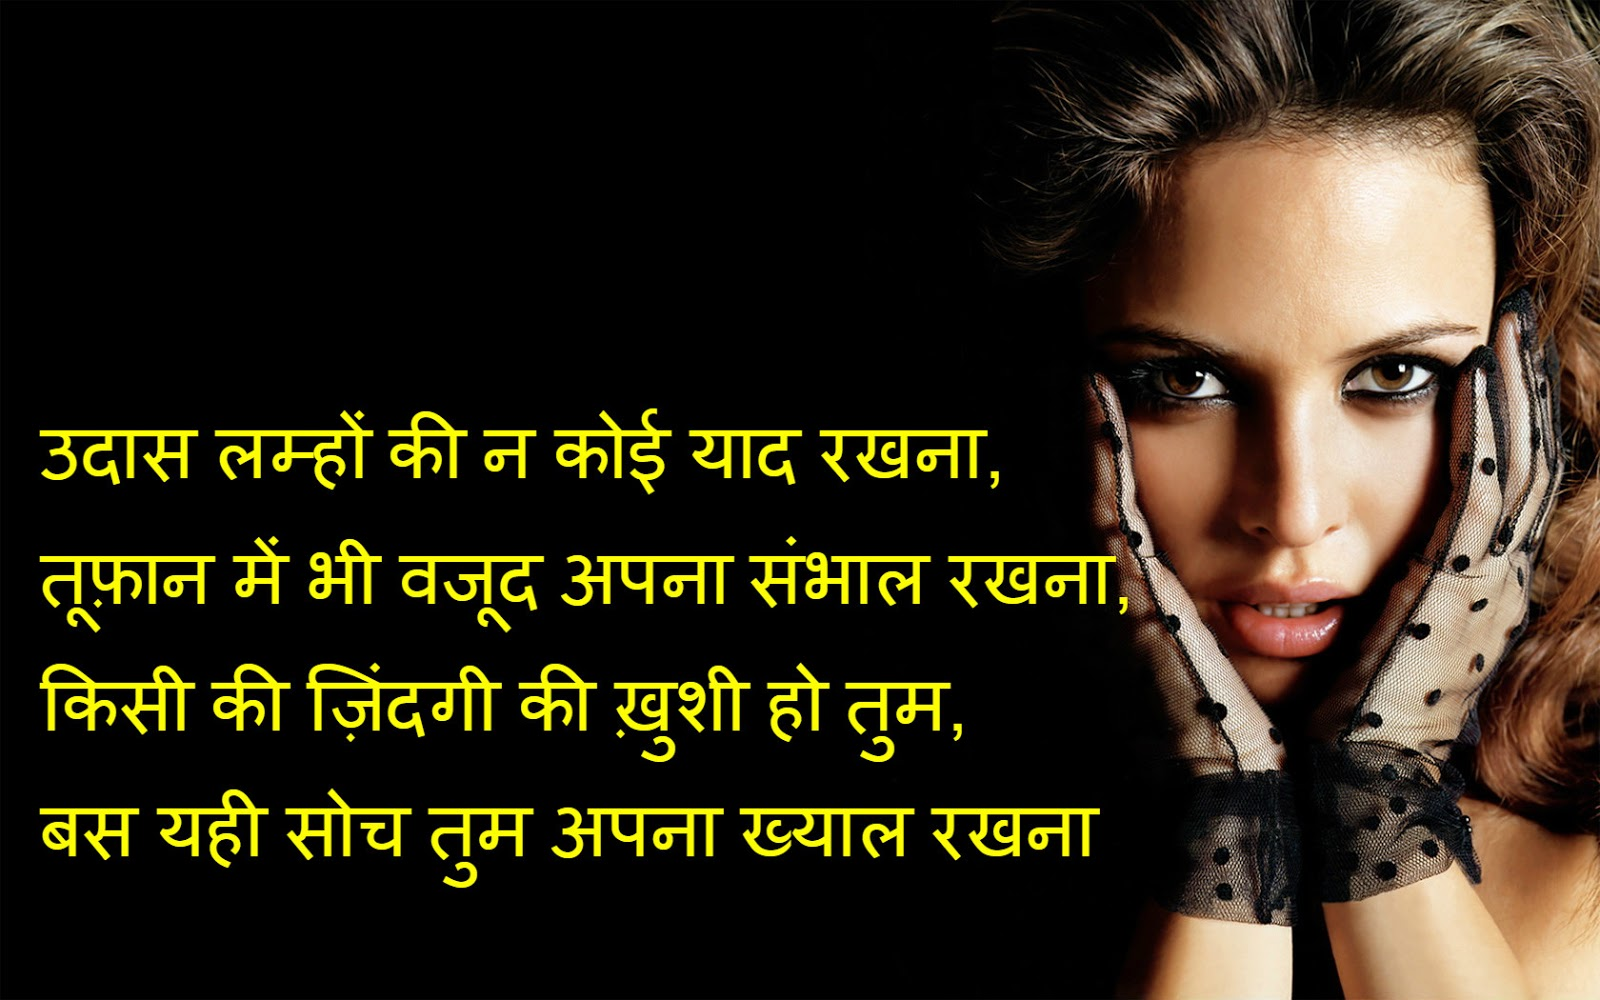 Romantic Shayari With Images For Facebook Download 2017